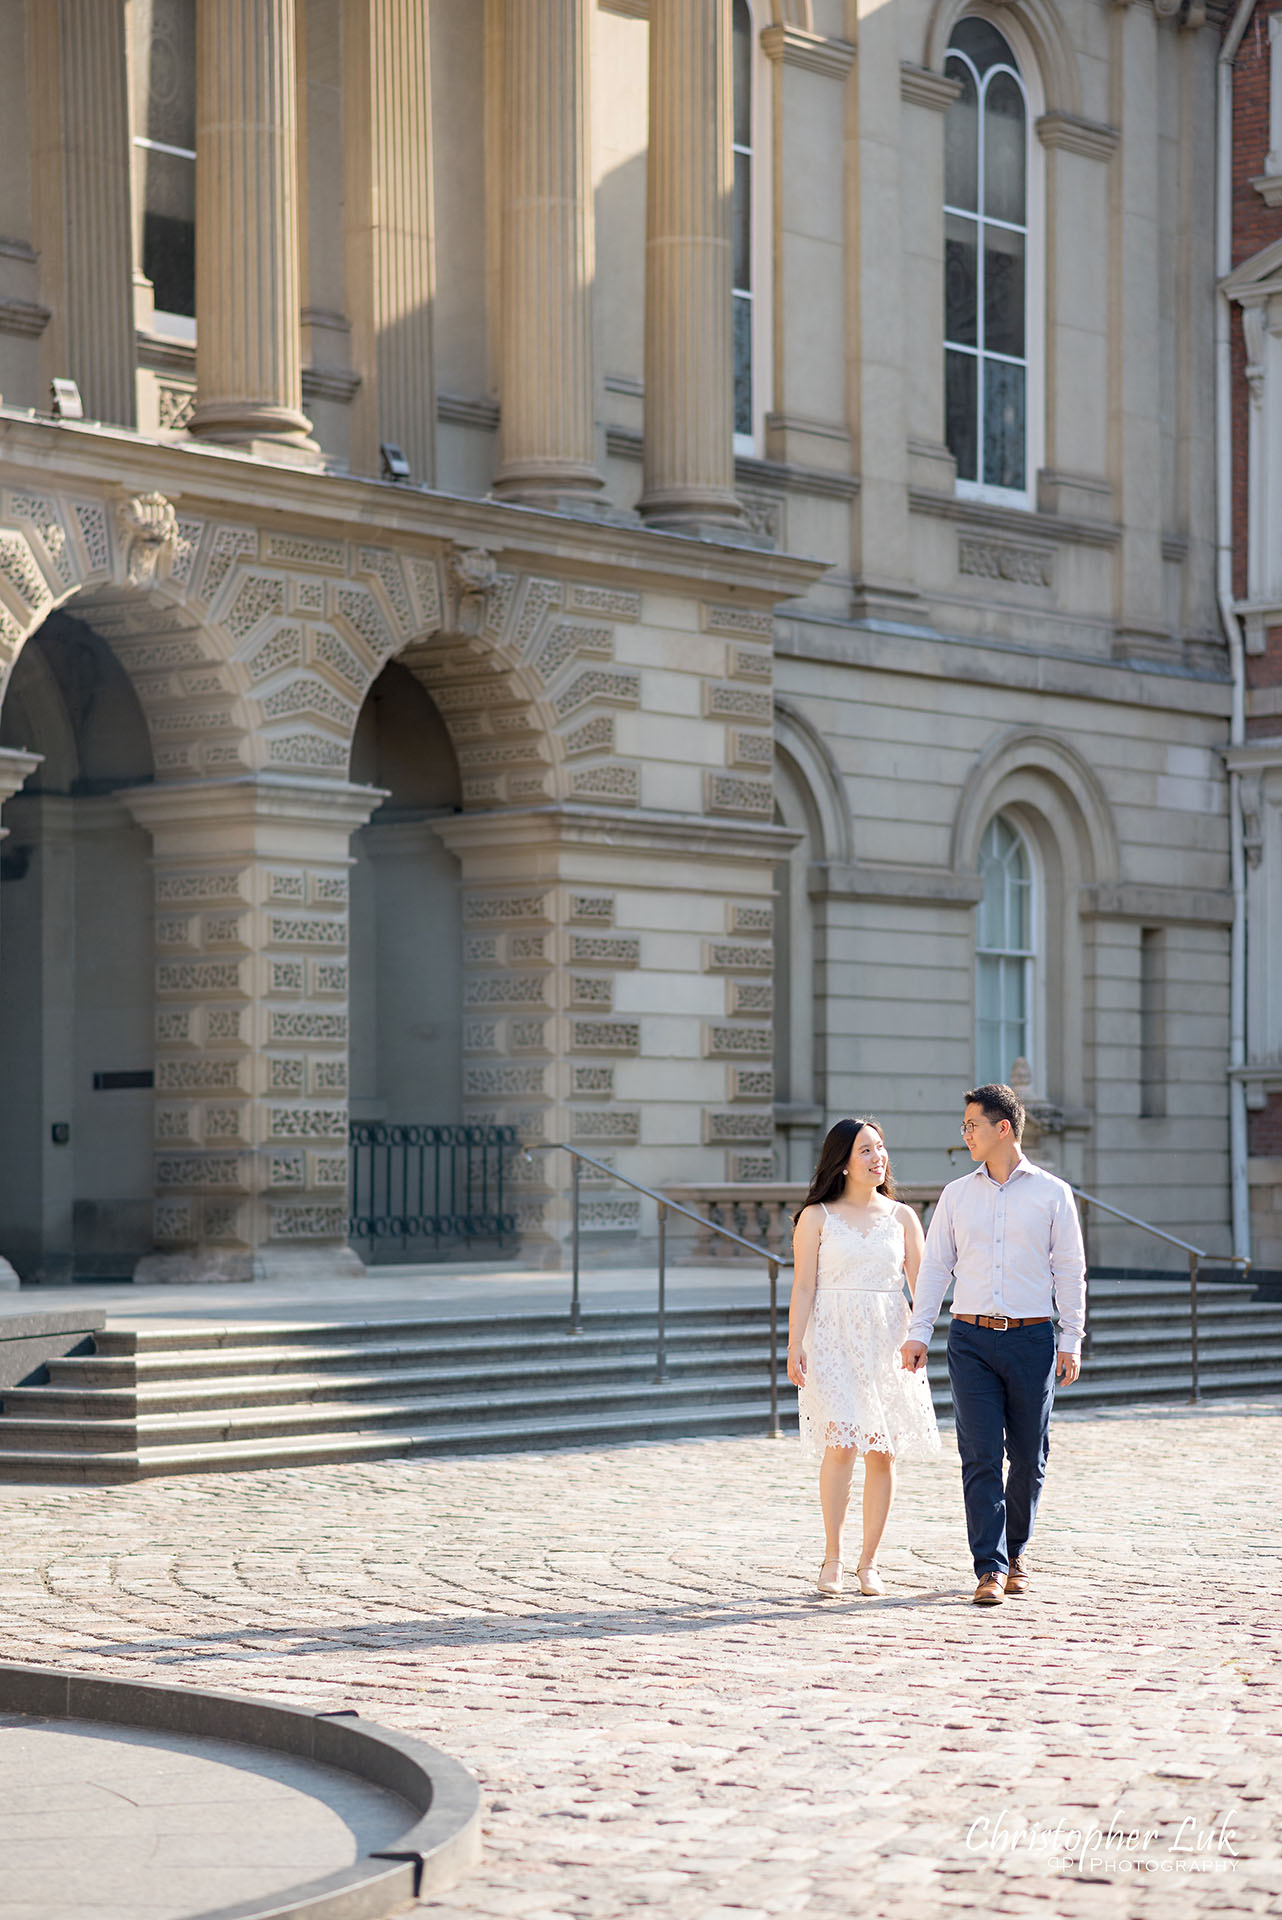 Christopher Luk Wedding Photographer Osgoode Hall Toronto Bride Groom Main Historic Building Front Cobblestone Sunrise Holding Hands Walking Together Portrait Natural Candid Photojournalistic